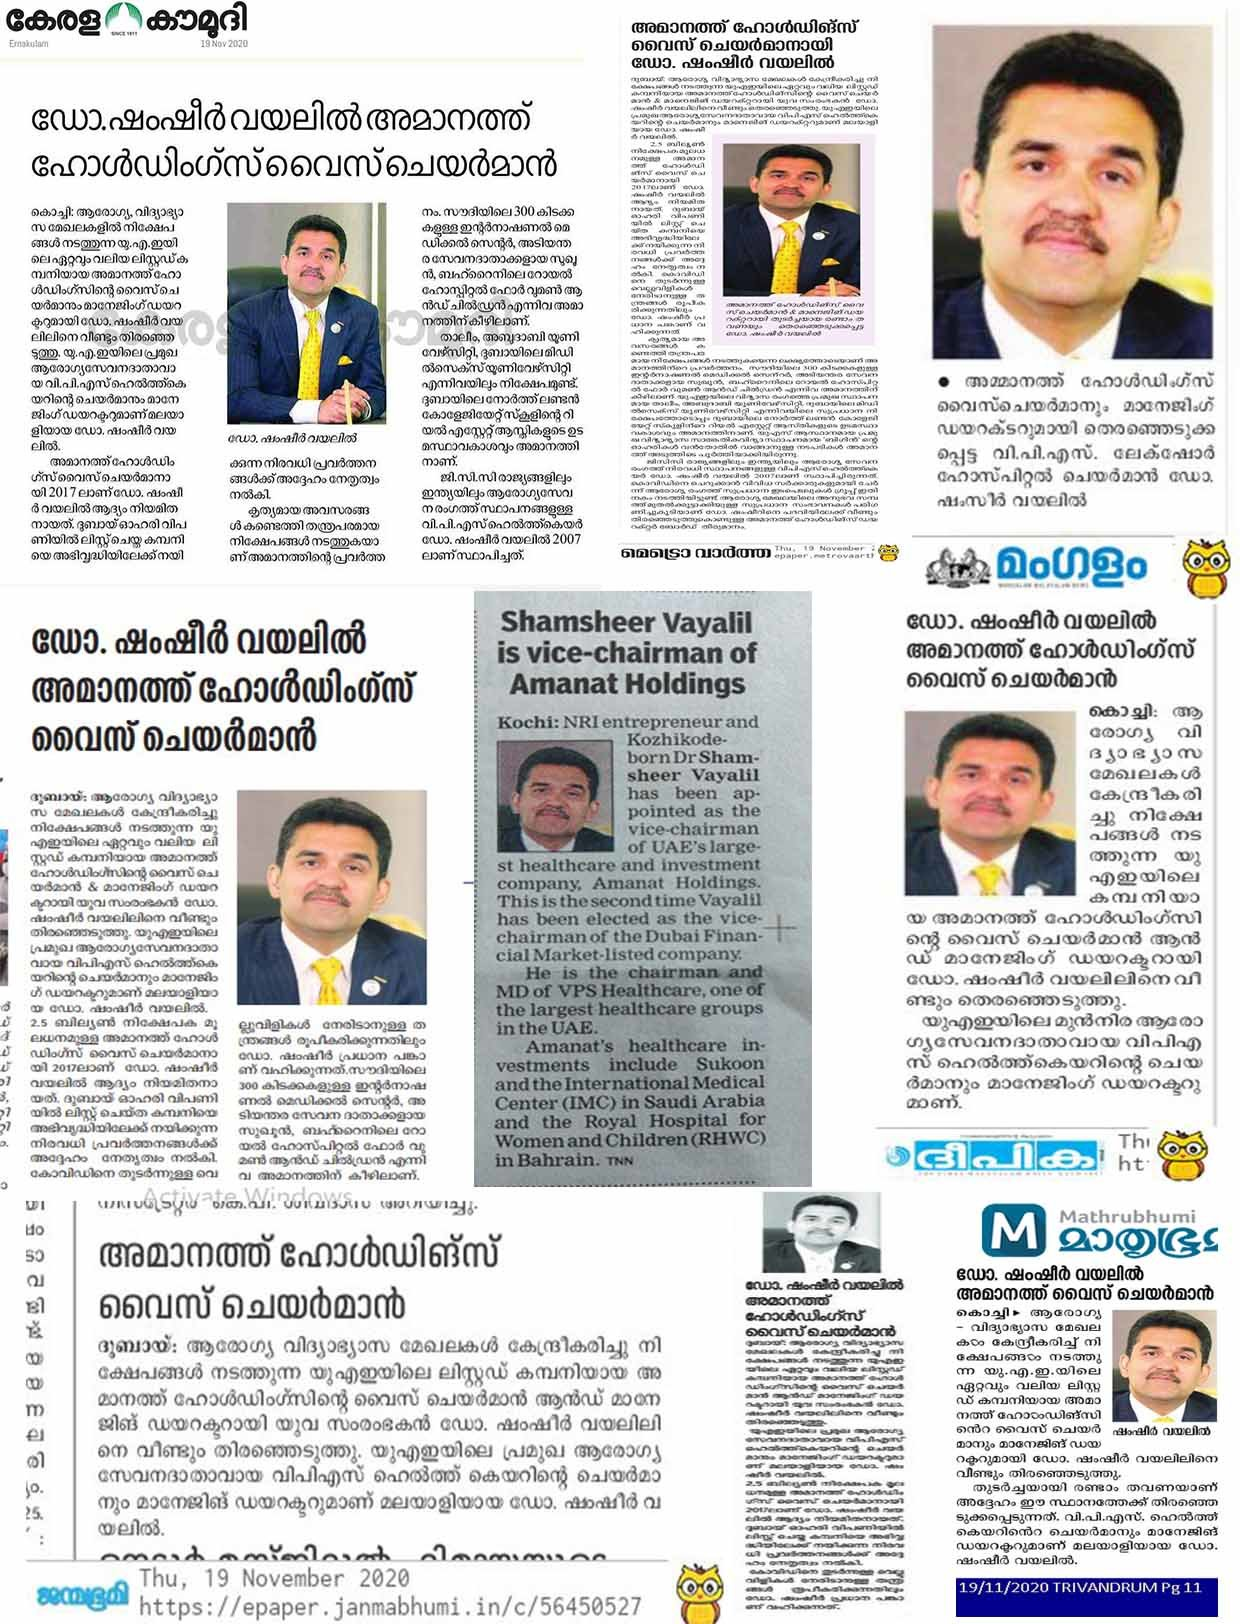 Dr. Shamsheer Vayalil has been re-elected as the Vice Chairman of Amanat